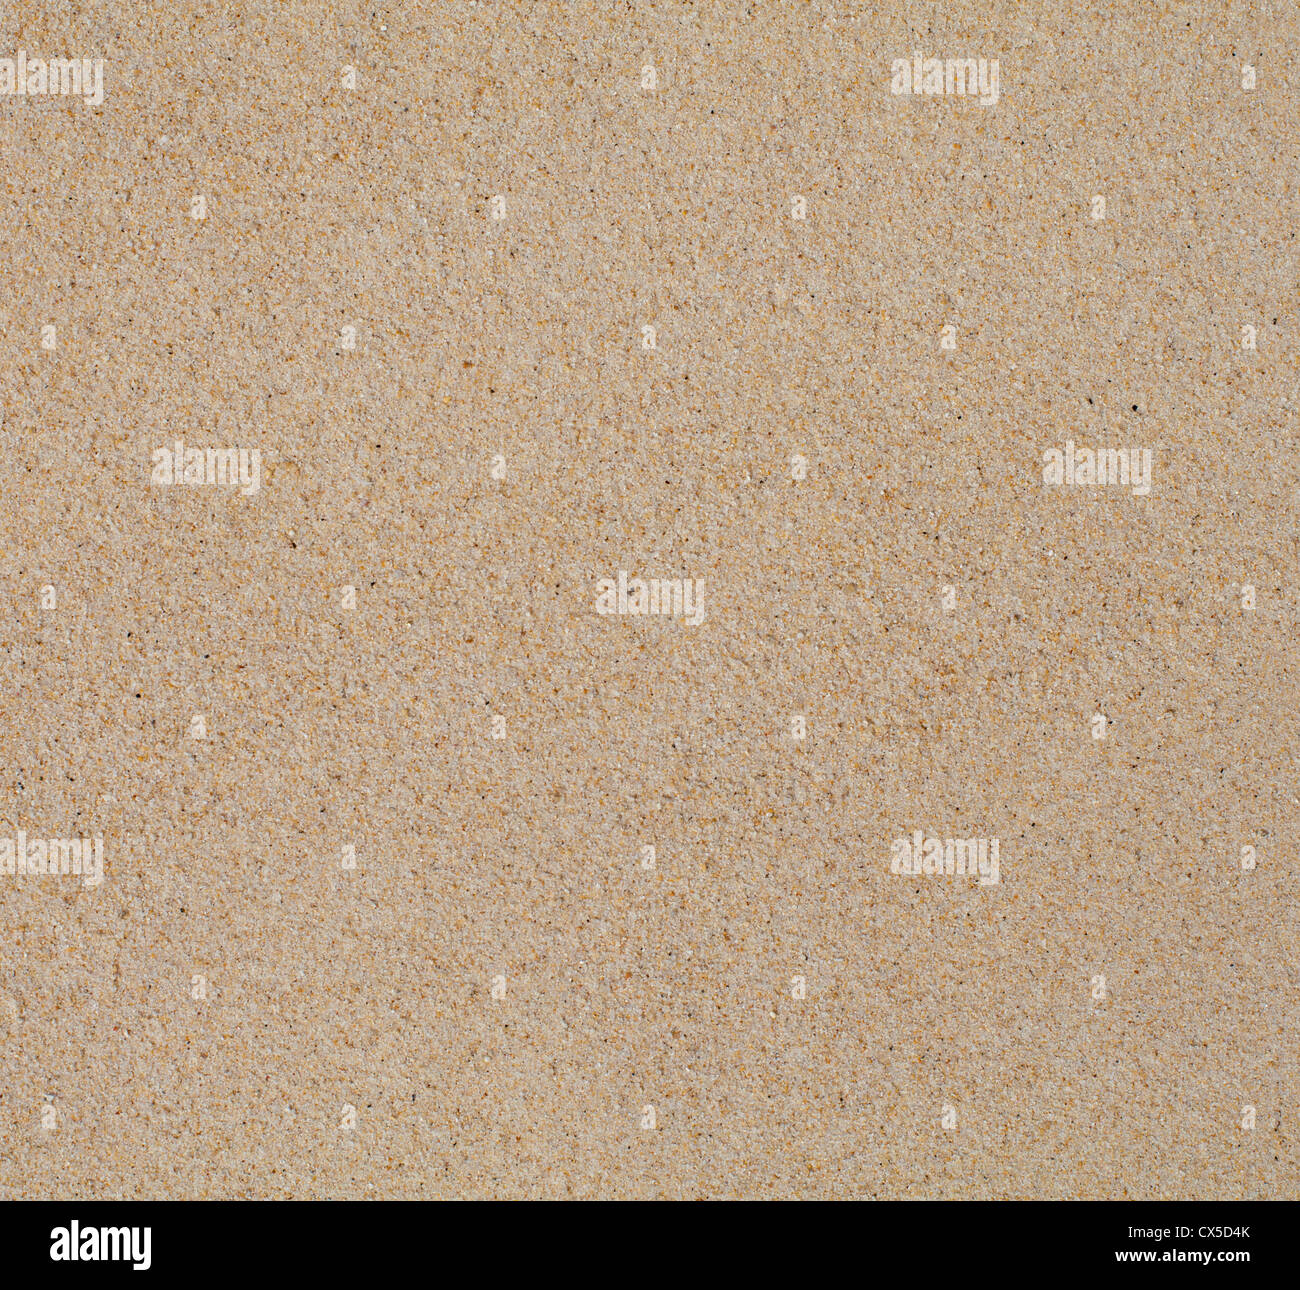 Dry clean beach sand background texture - Stock Image